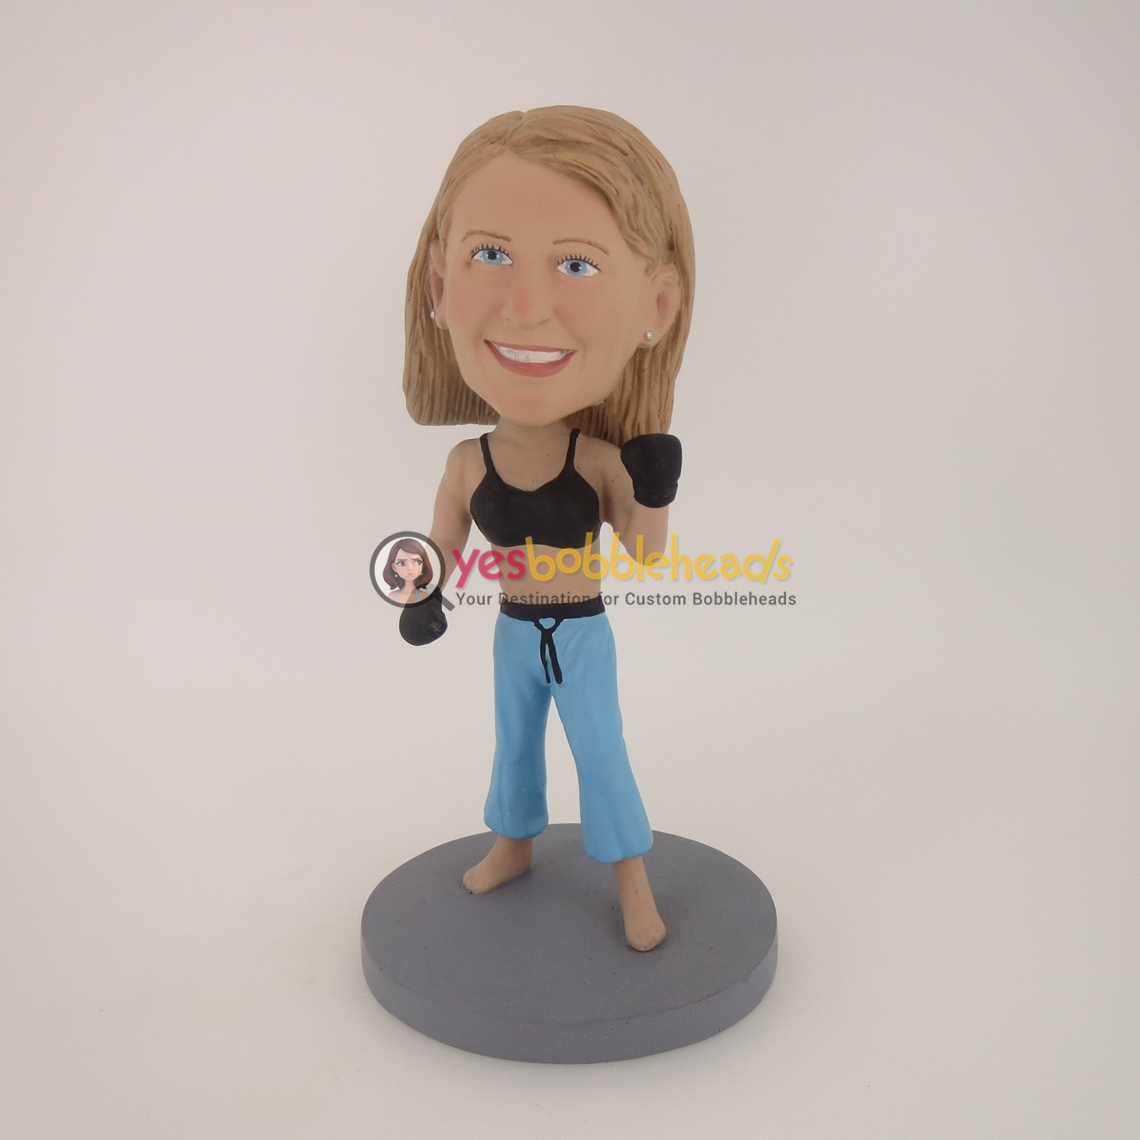 Picture of Custom Bobblehead Doll: Boxing Woman